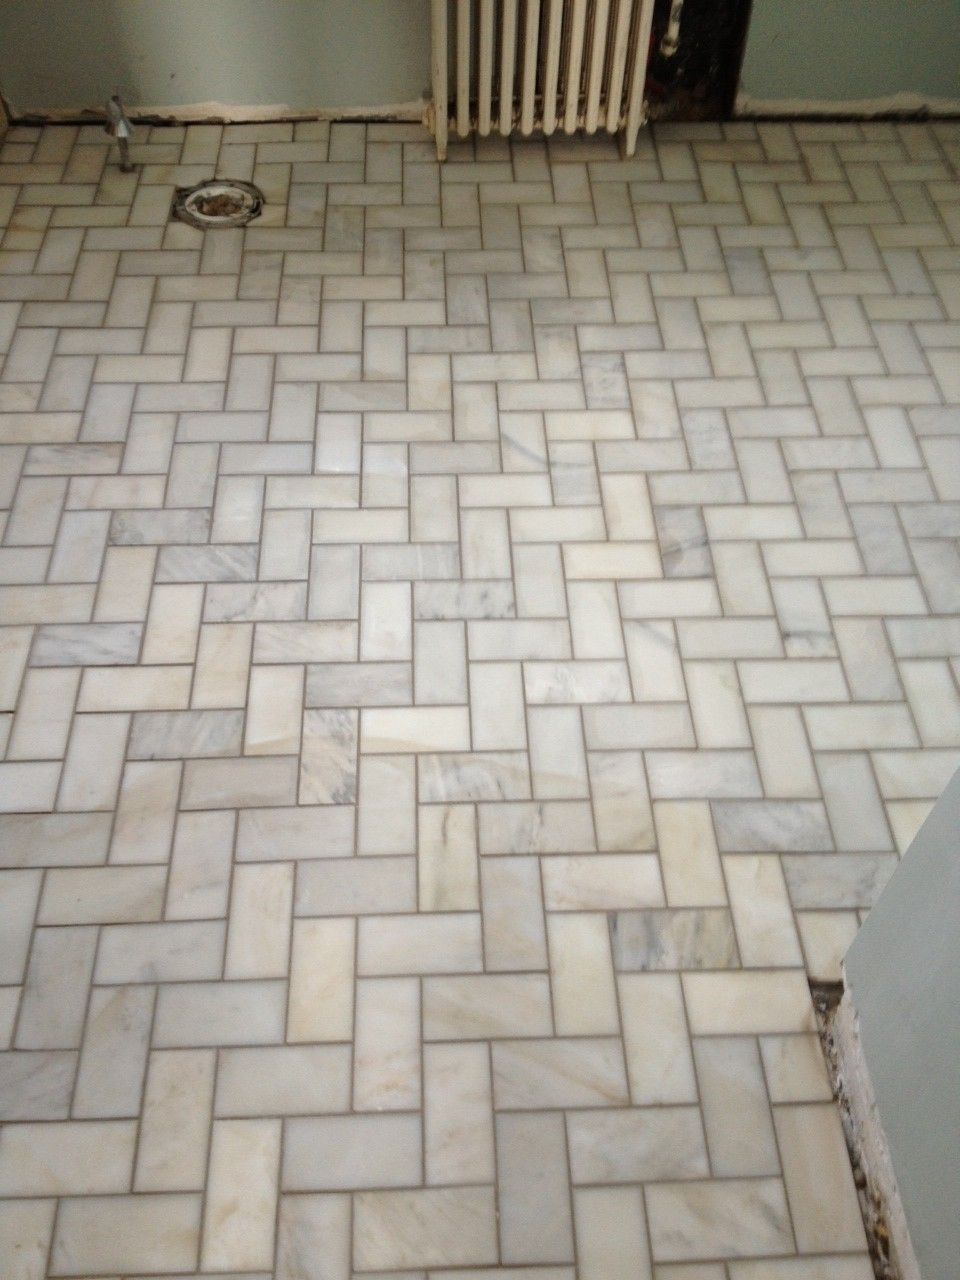 floor tile samples sample tile patterns with smooth design bathroom floor tile pinterest tile patterns smooth and tile